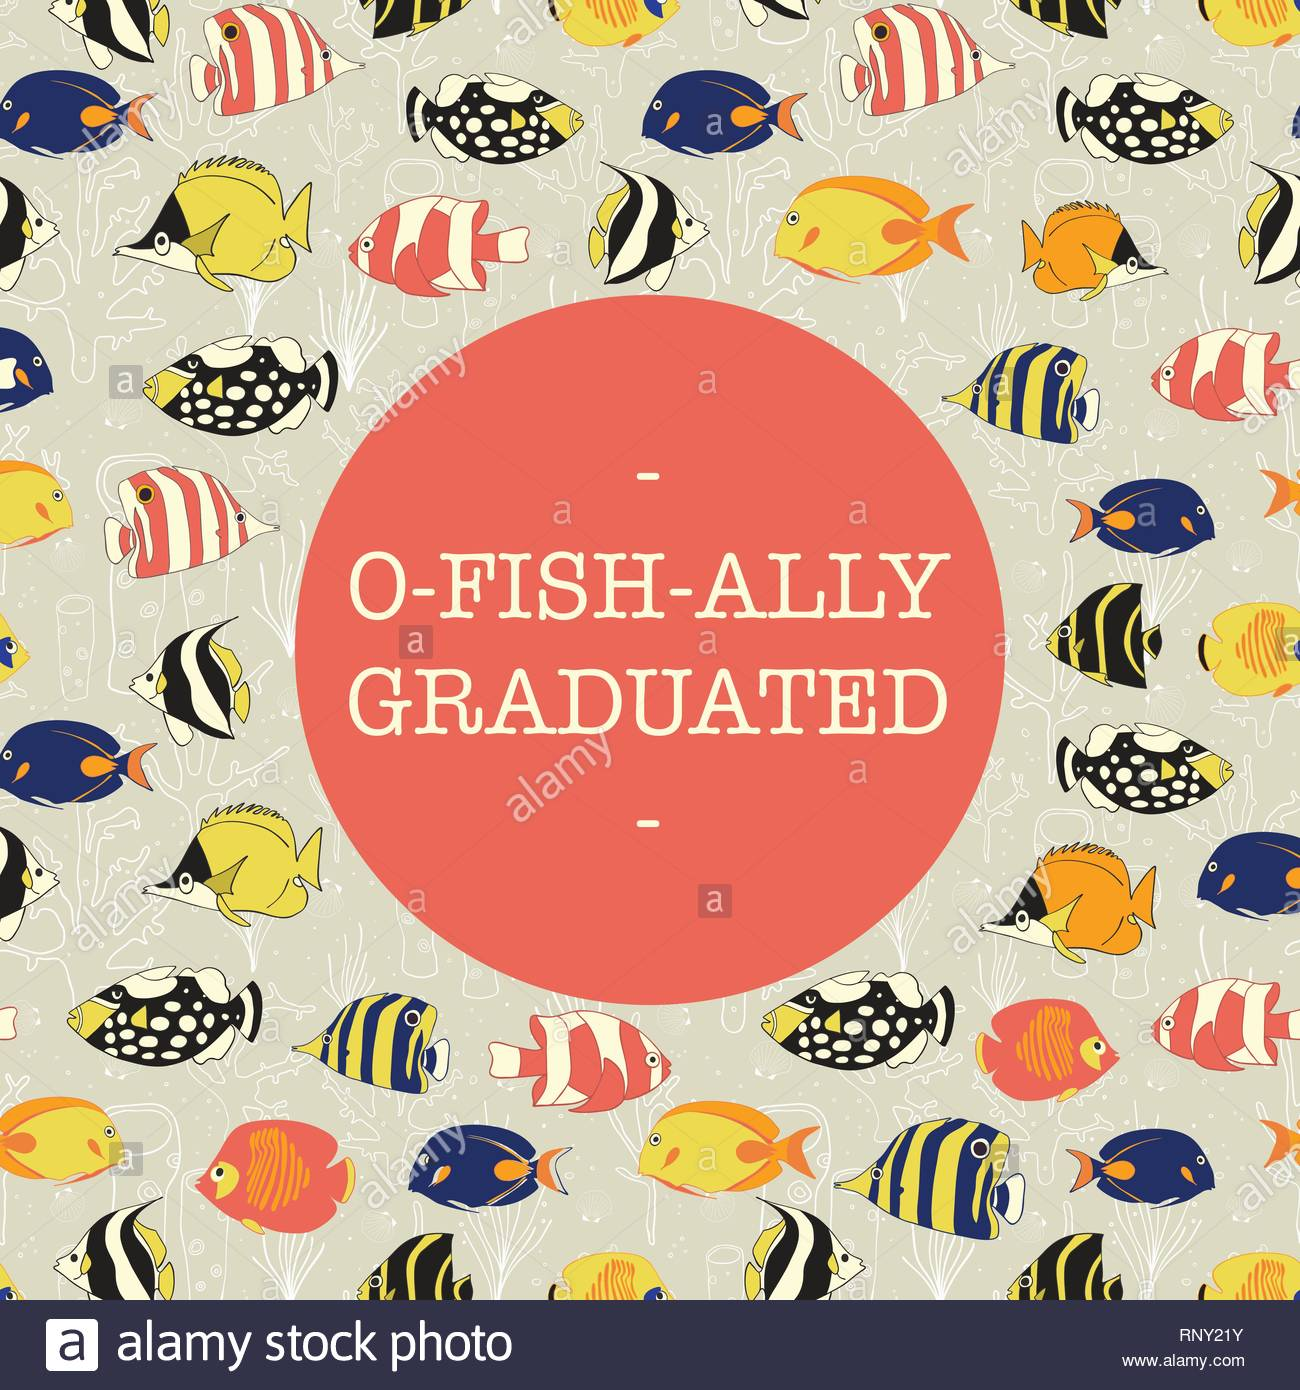 Fun Graduation vector design. Officially graduated. Ofishally graduated. Illustration of colorful fish. For invitation, banner, greeting card, postcard, party, school book. Vector graduate template. - Stock Image